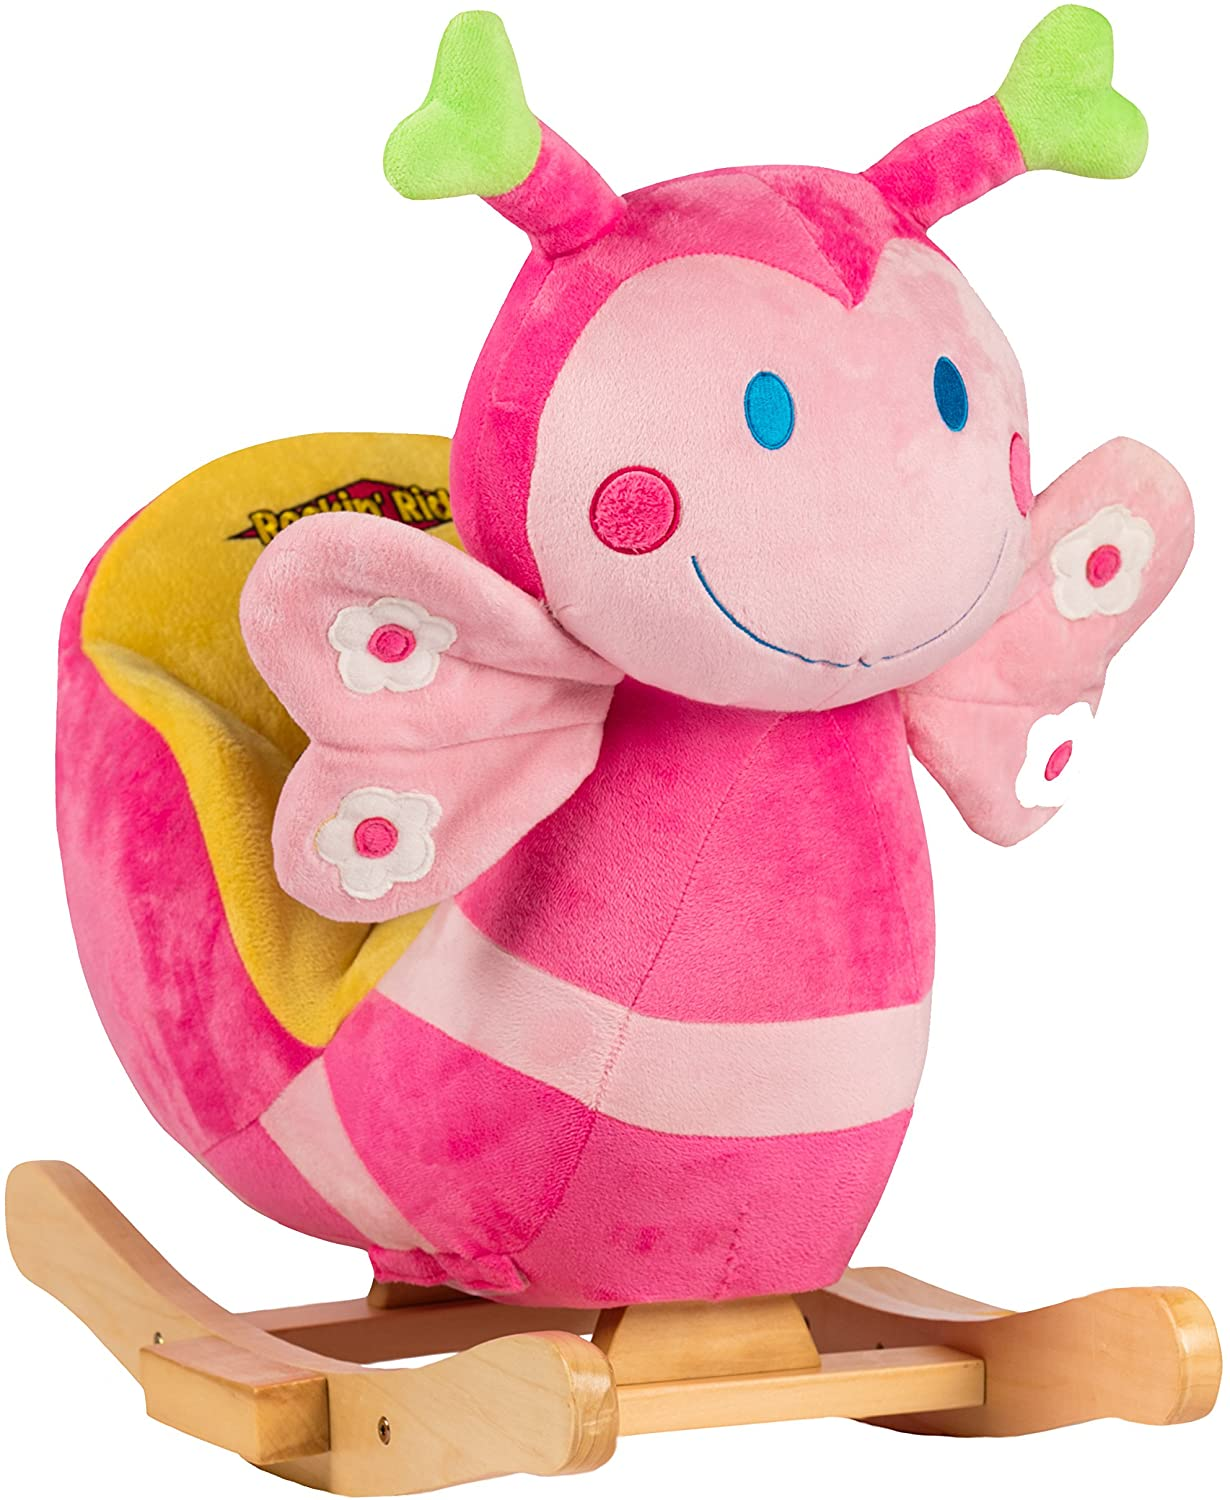 Rockin' Rider Blossom The Butterfly Baby Rocker Toy